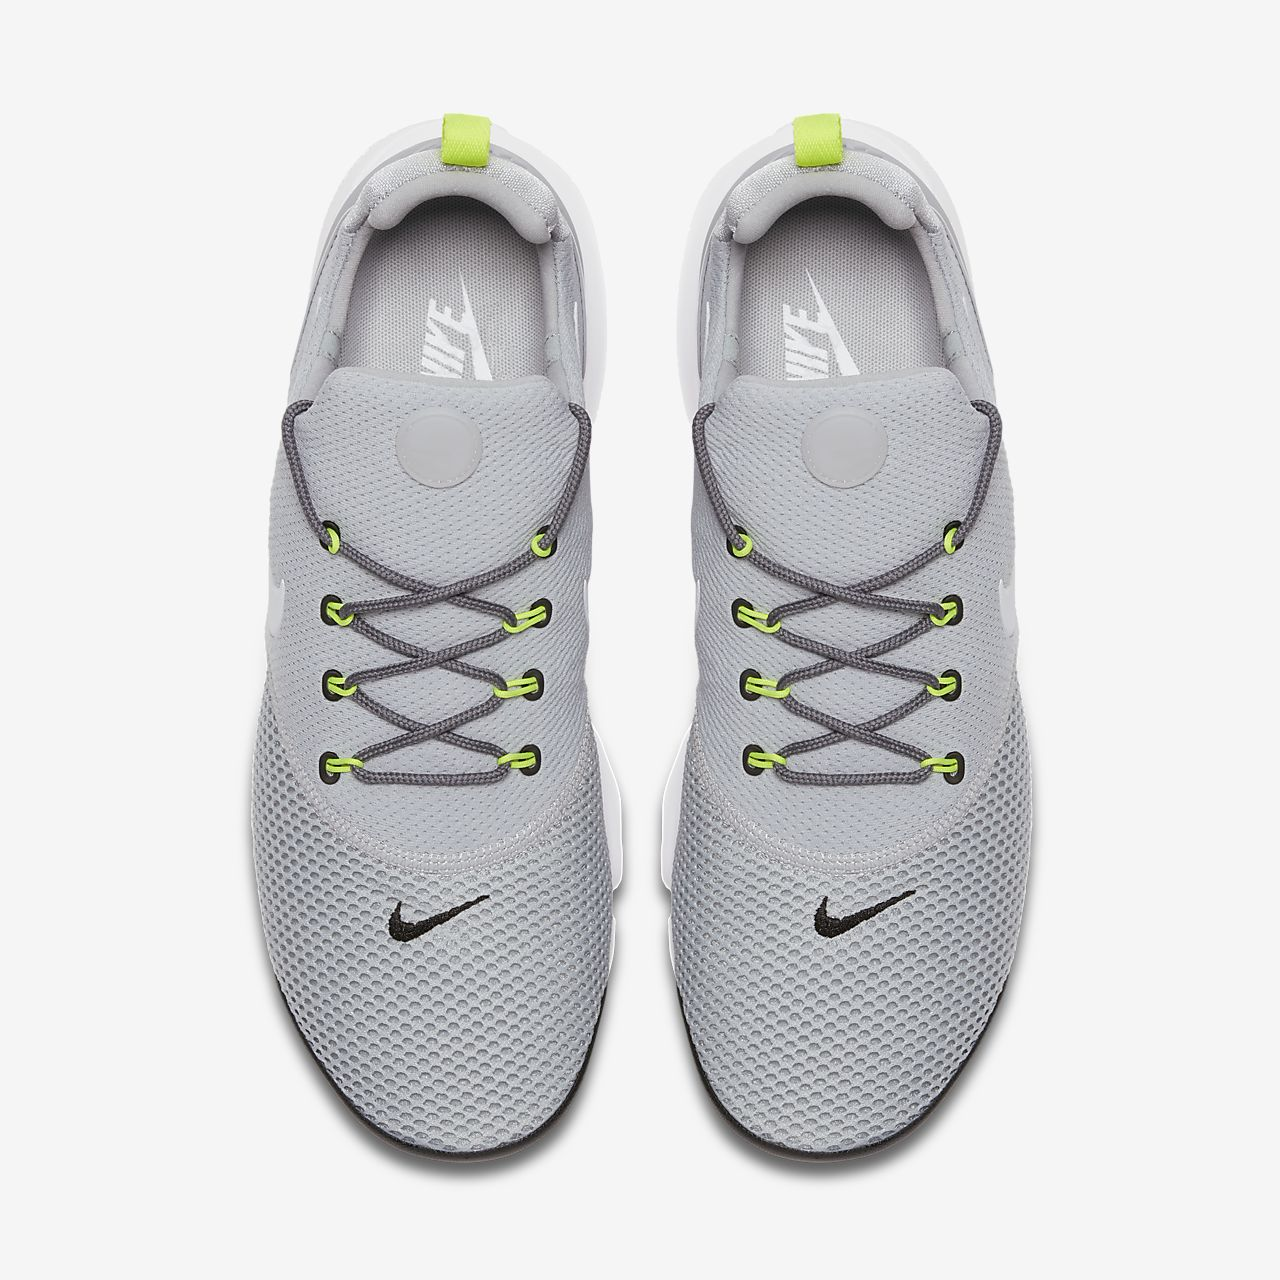 Low Resolution Nike Presto Fly Herrenschuh Nike Presto Fly Herrenschuh